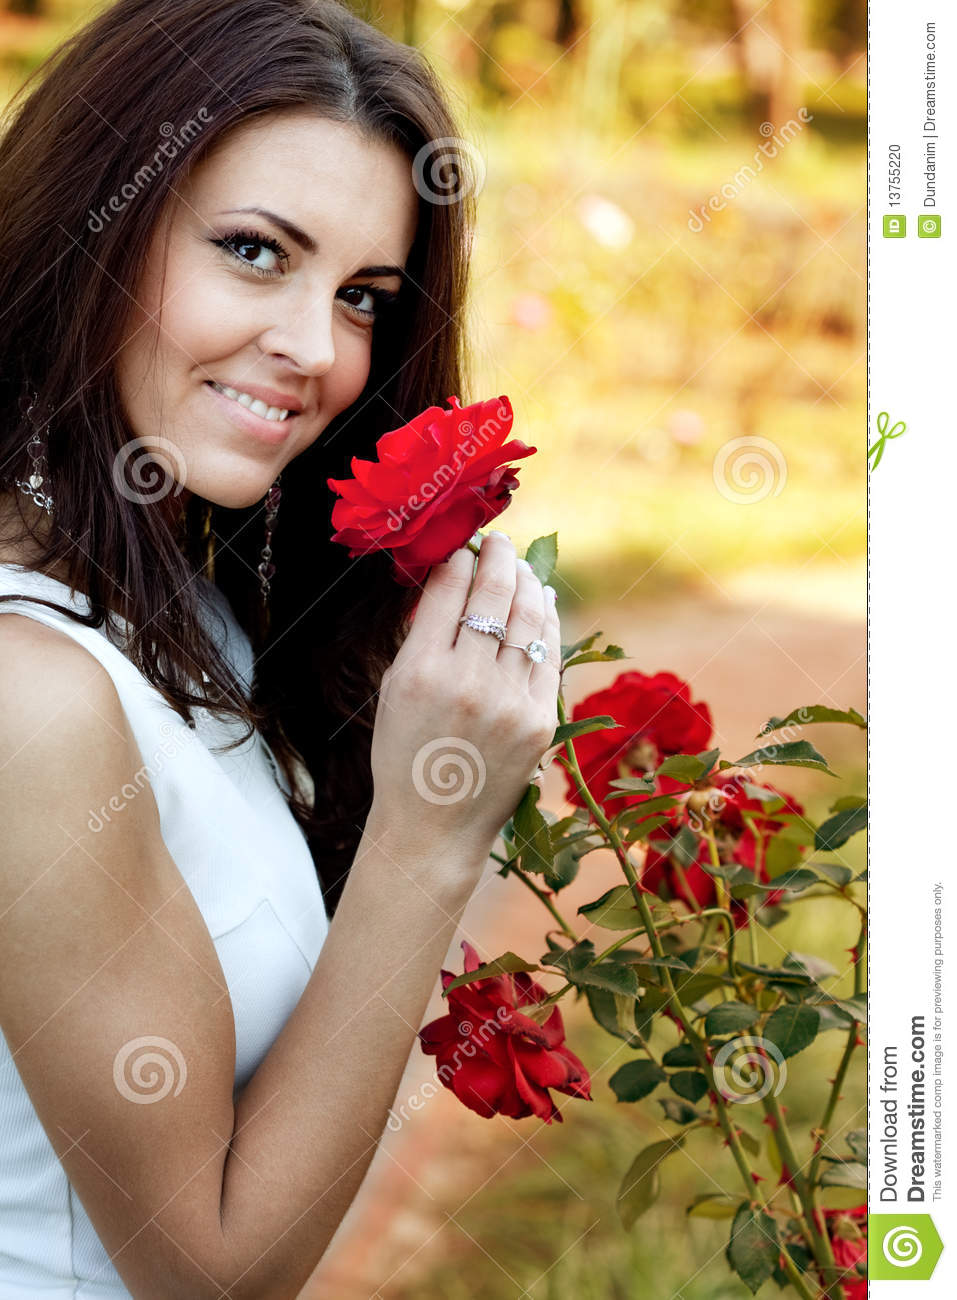 jardins rosas vermelhas : jardins rosas vermelhas:Woman Smelling Roses Red